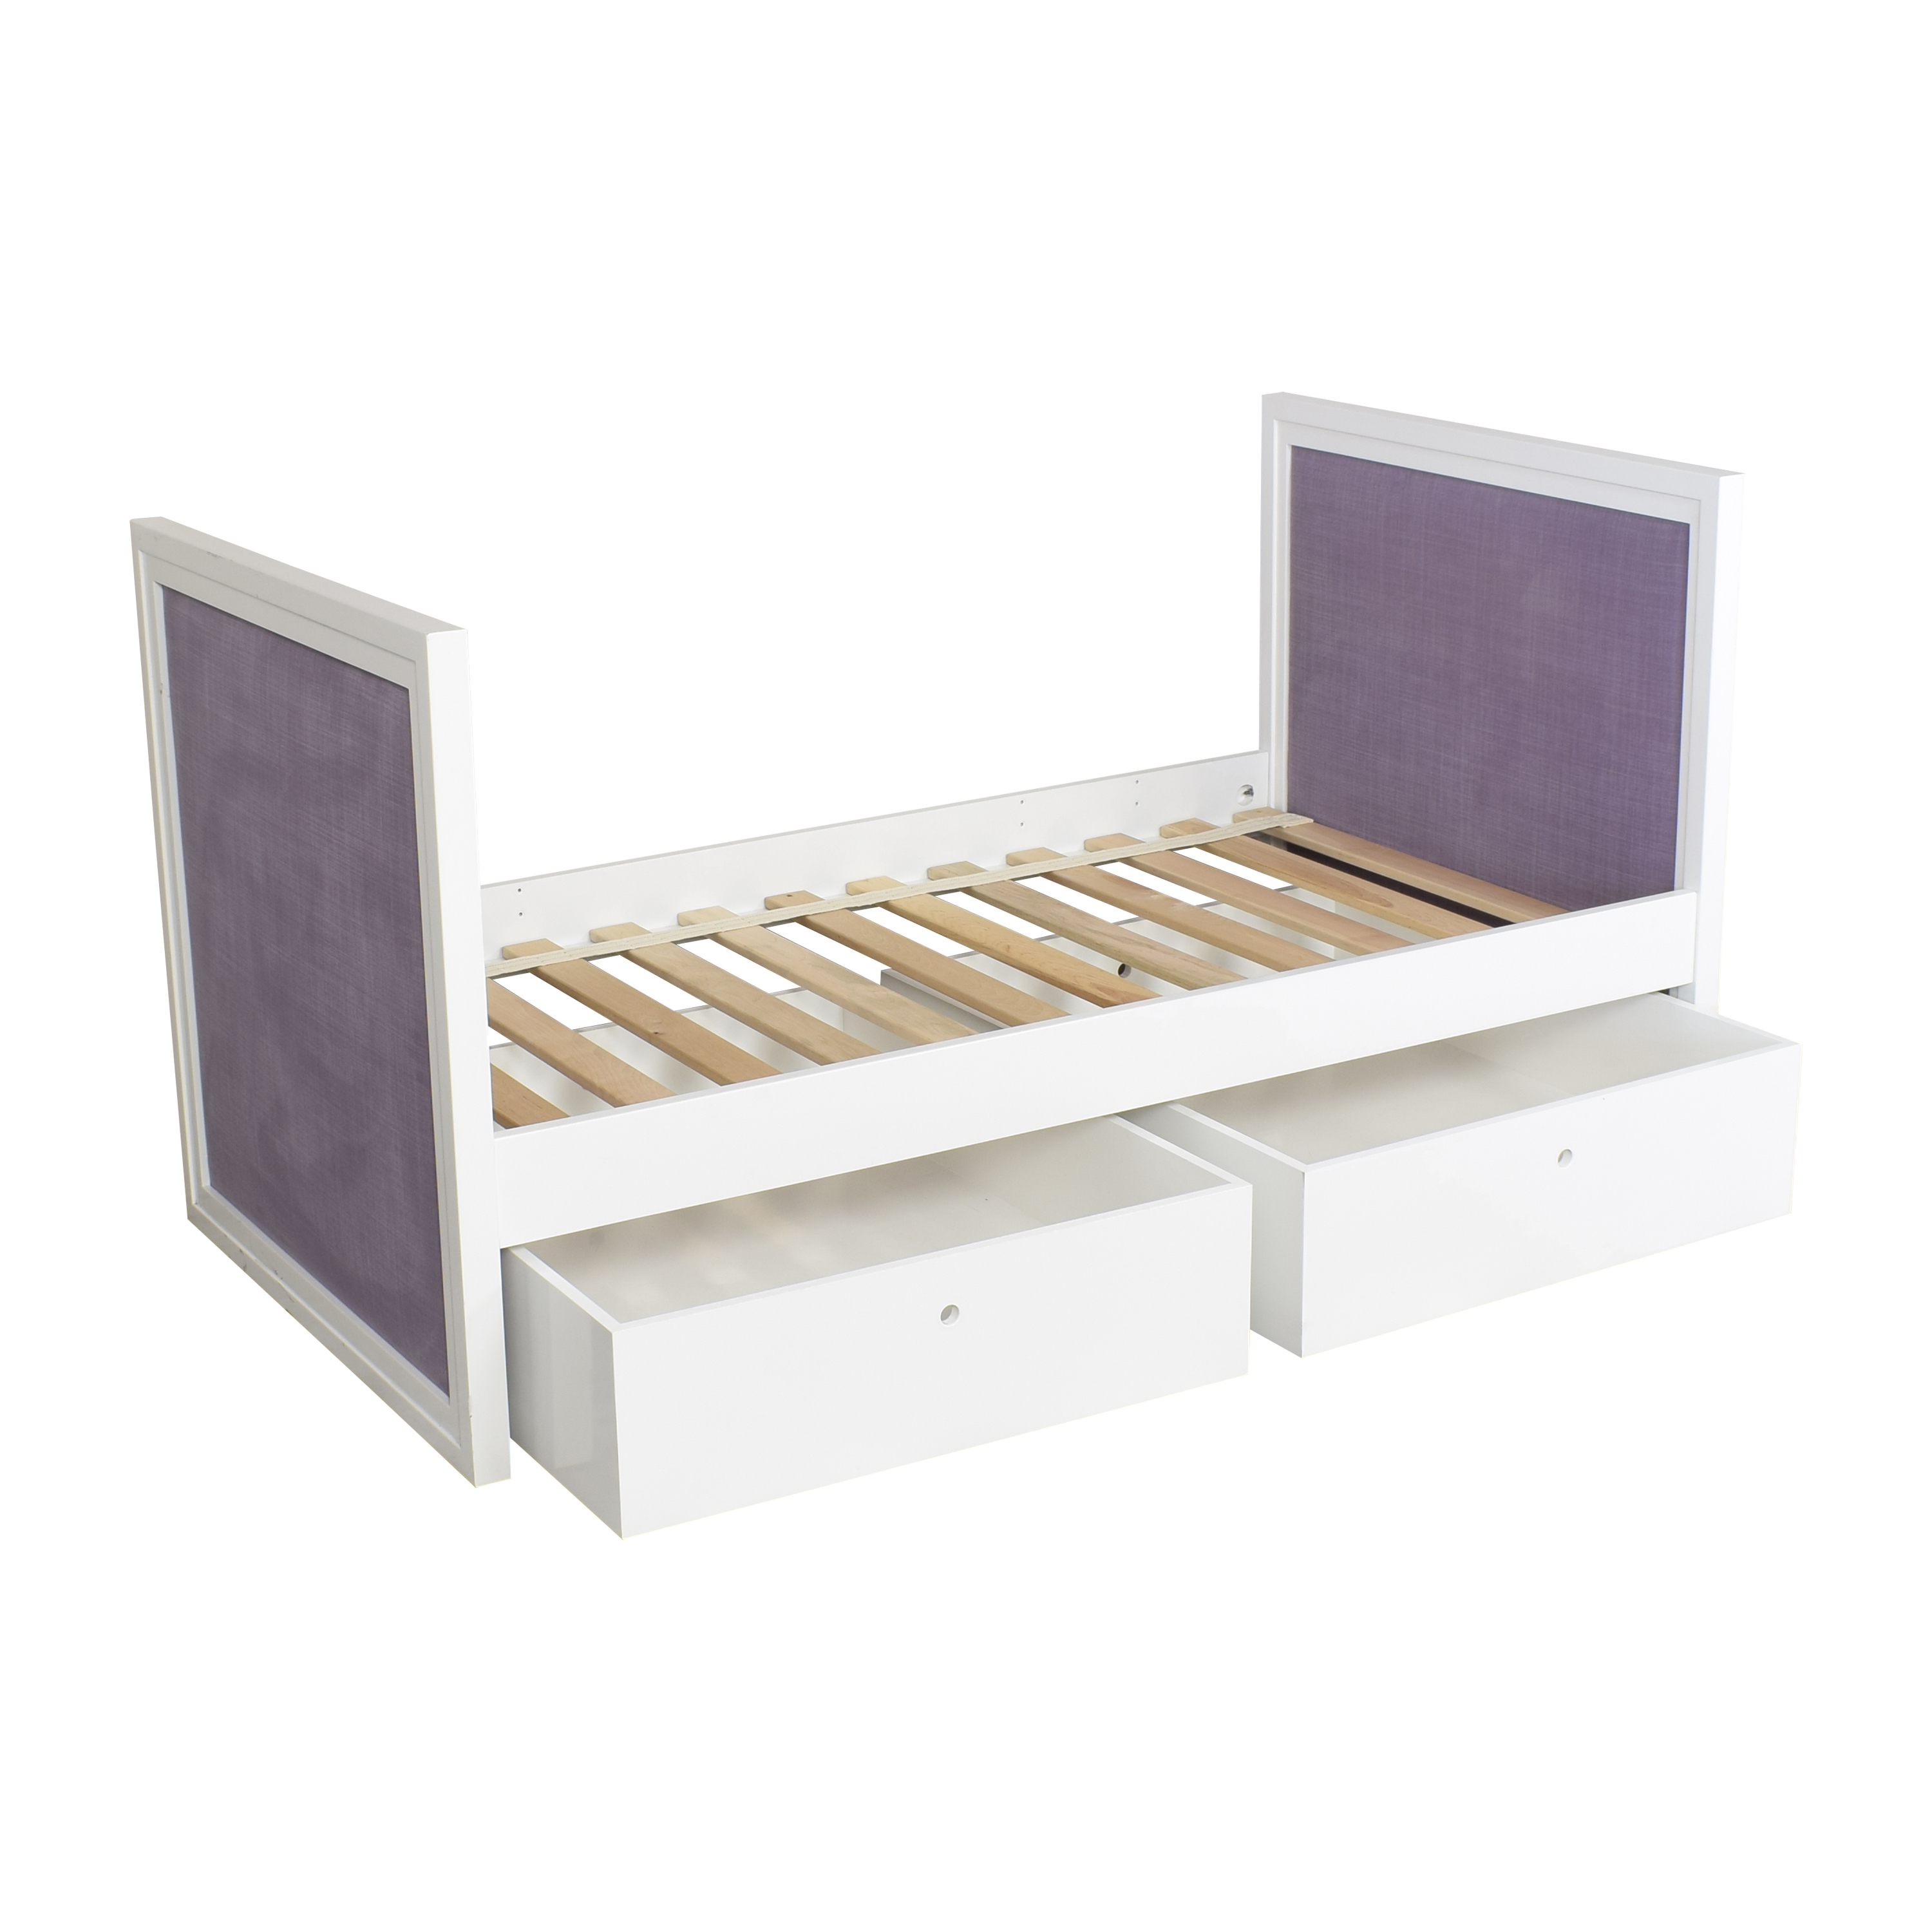 buy ducduc Cabana Upholstered Twin Daybed with Storage ducduc